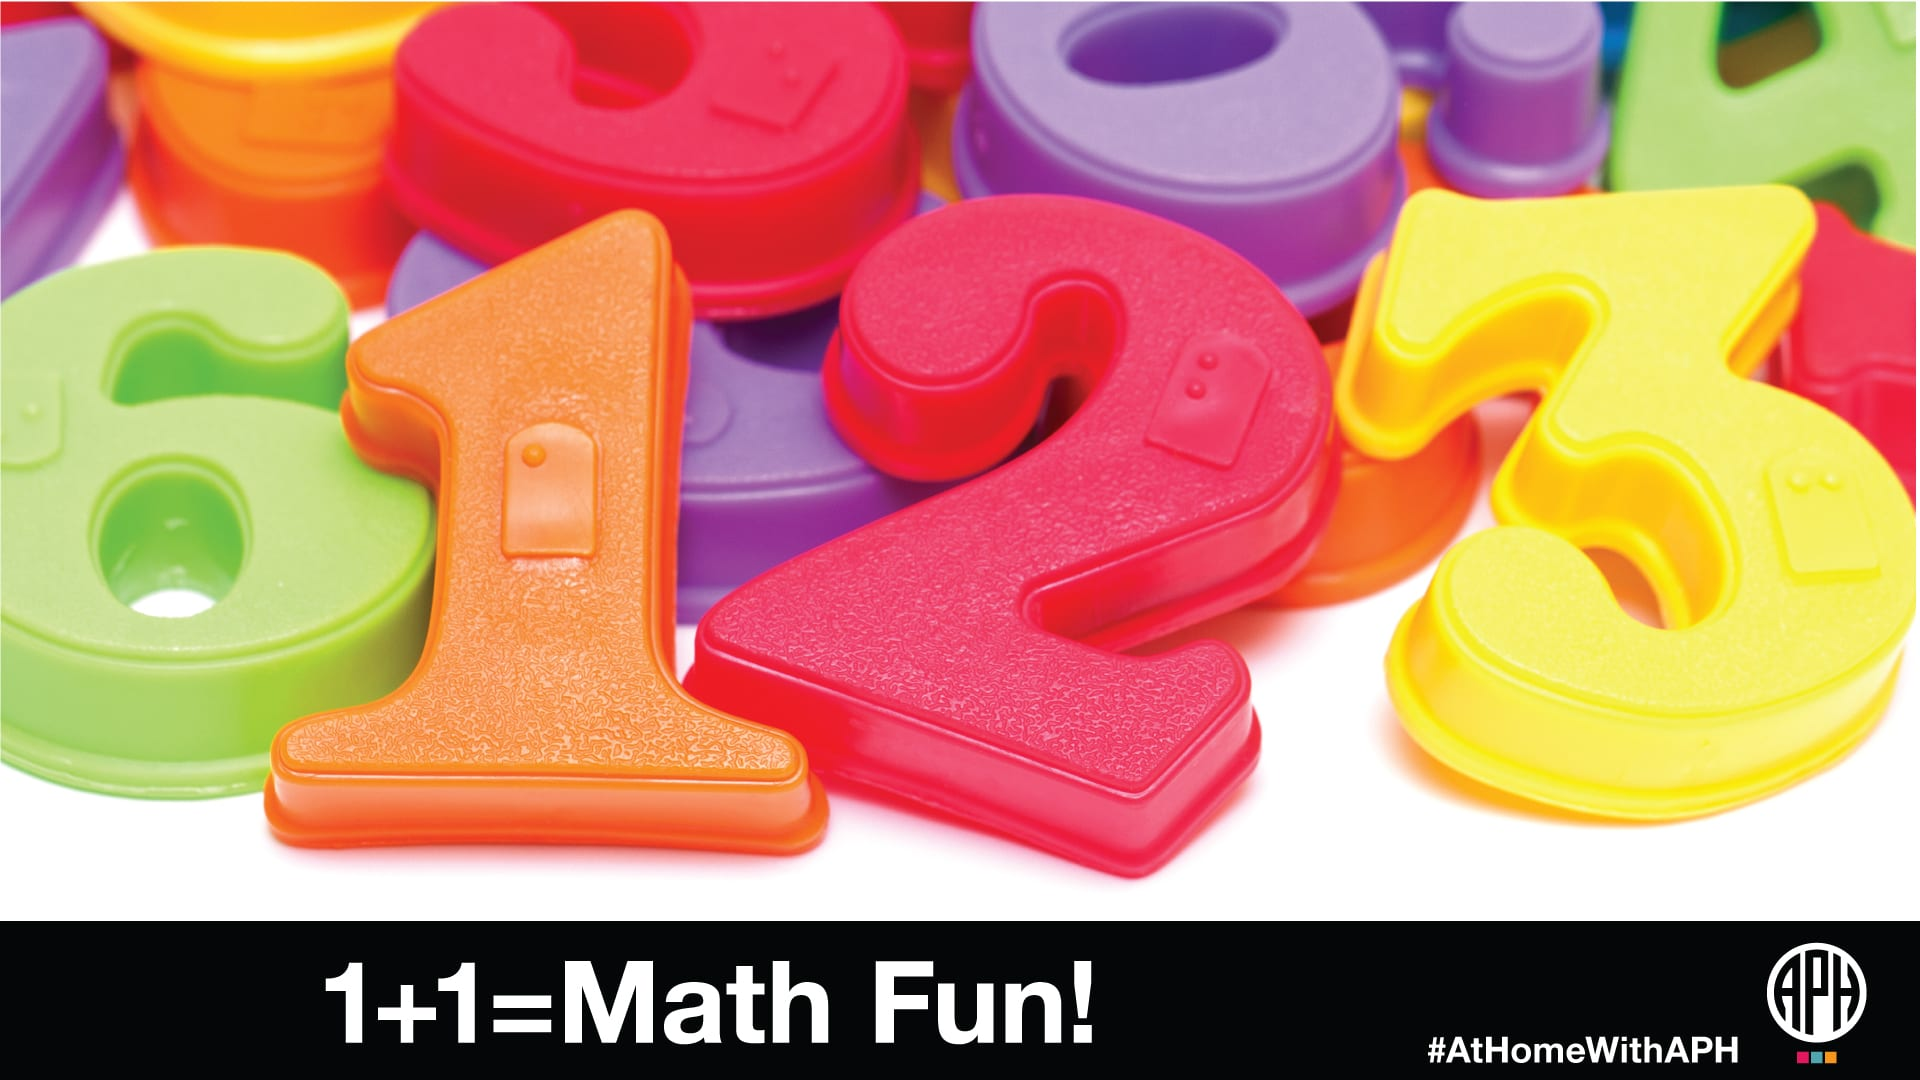 "plastic numbers with braille on them, text reads ""1+1= Math Fun! #AtHomeWithAPH"" and the APH logo"